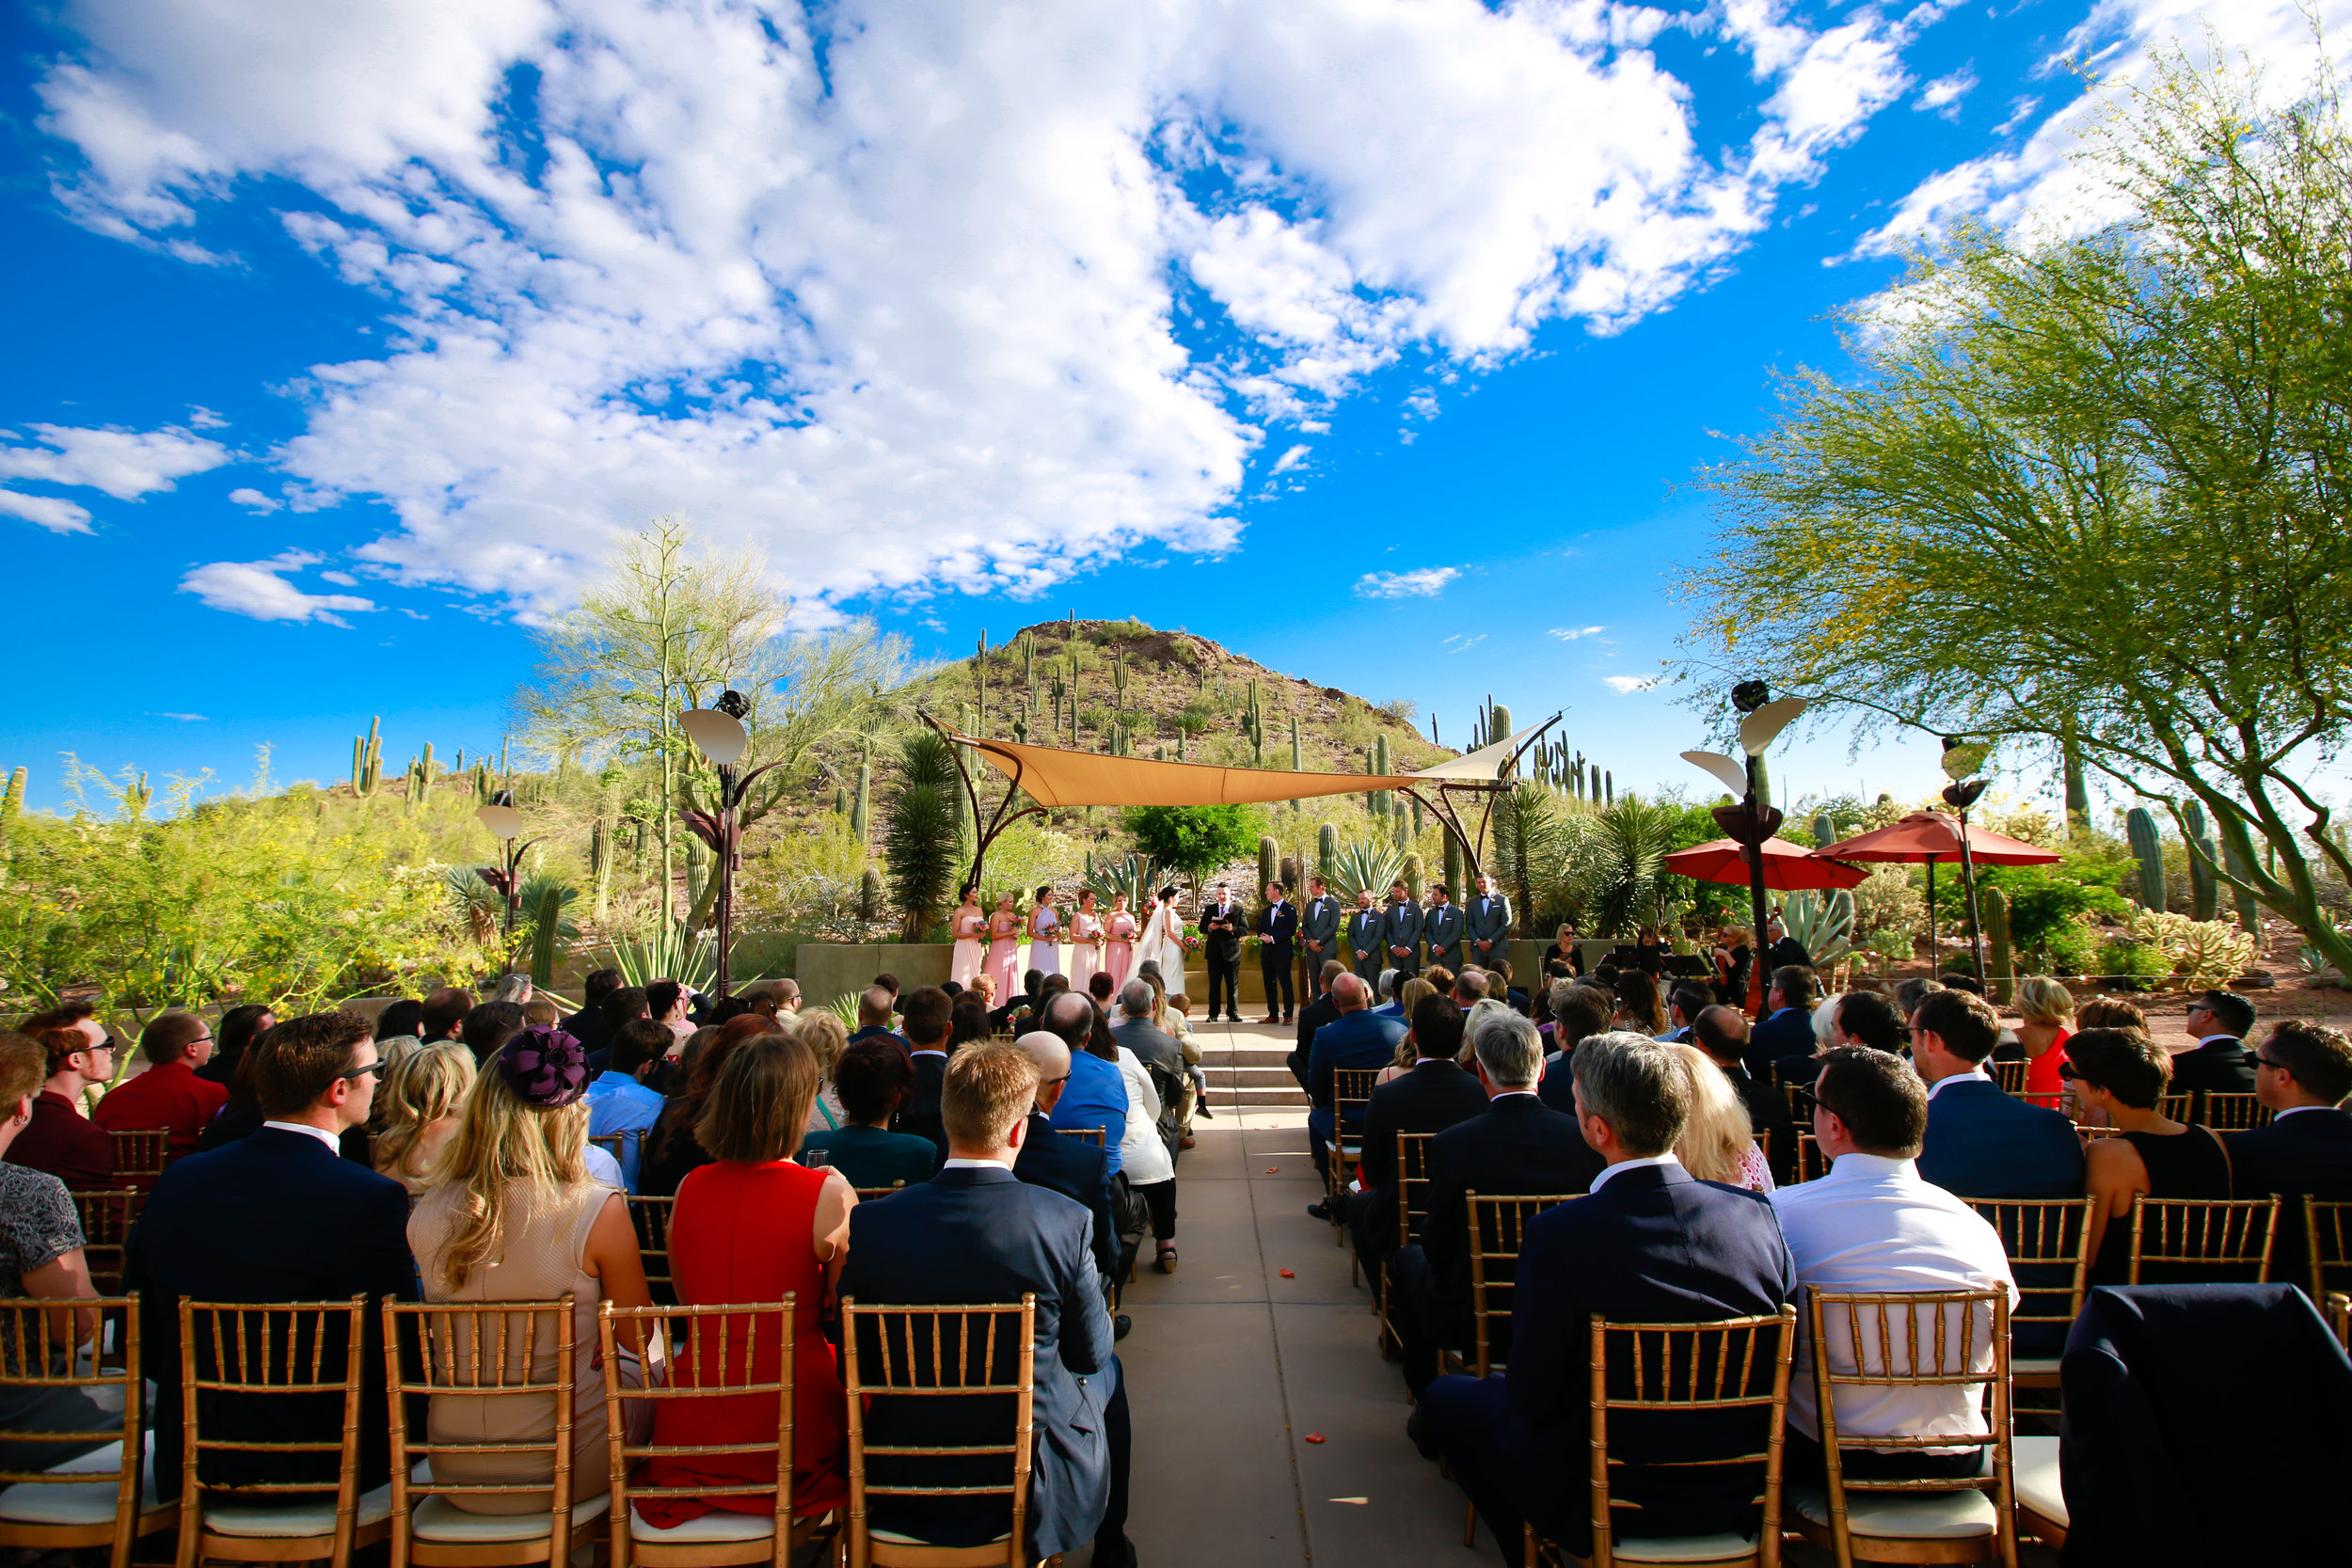 15 outdoor wedding ceremony spring wedding simple outdoor wedding bride and groom at the alter Mod Wed Photography Life Design Events.jpg